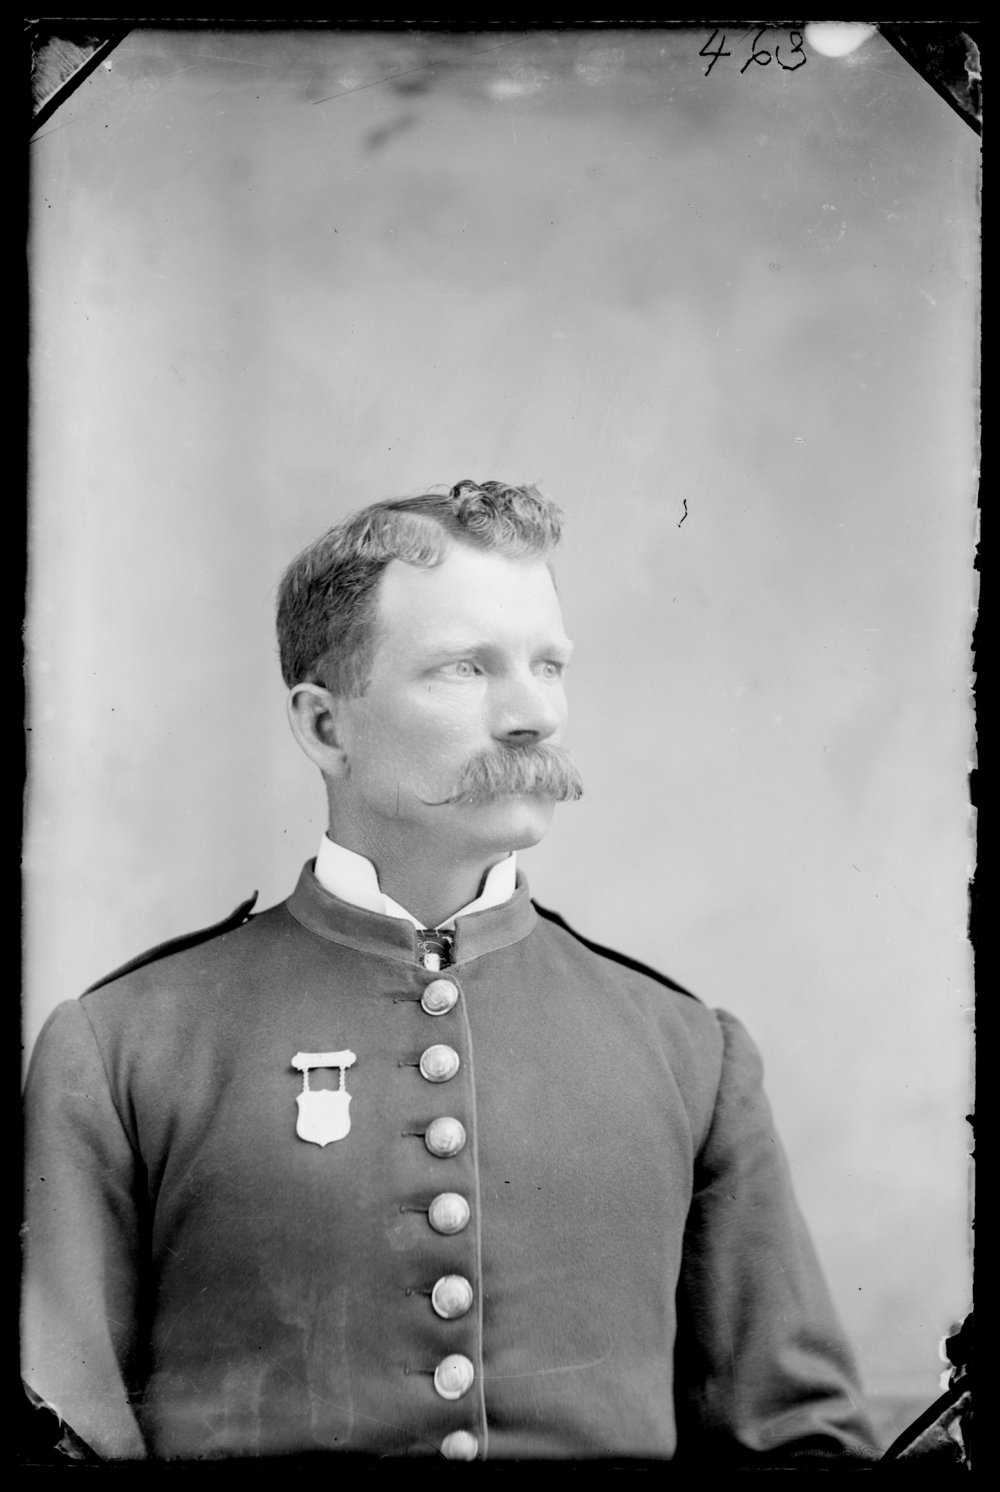 Michael A. Kennedy photo collection, St. Paul, Kansas - Portrait of Michael A. (M. A.) Kennedy in uniform (2764)